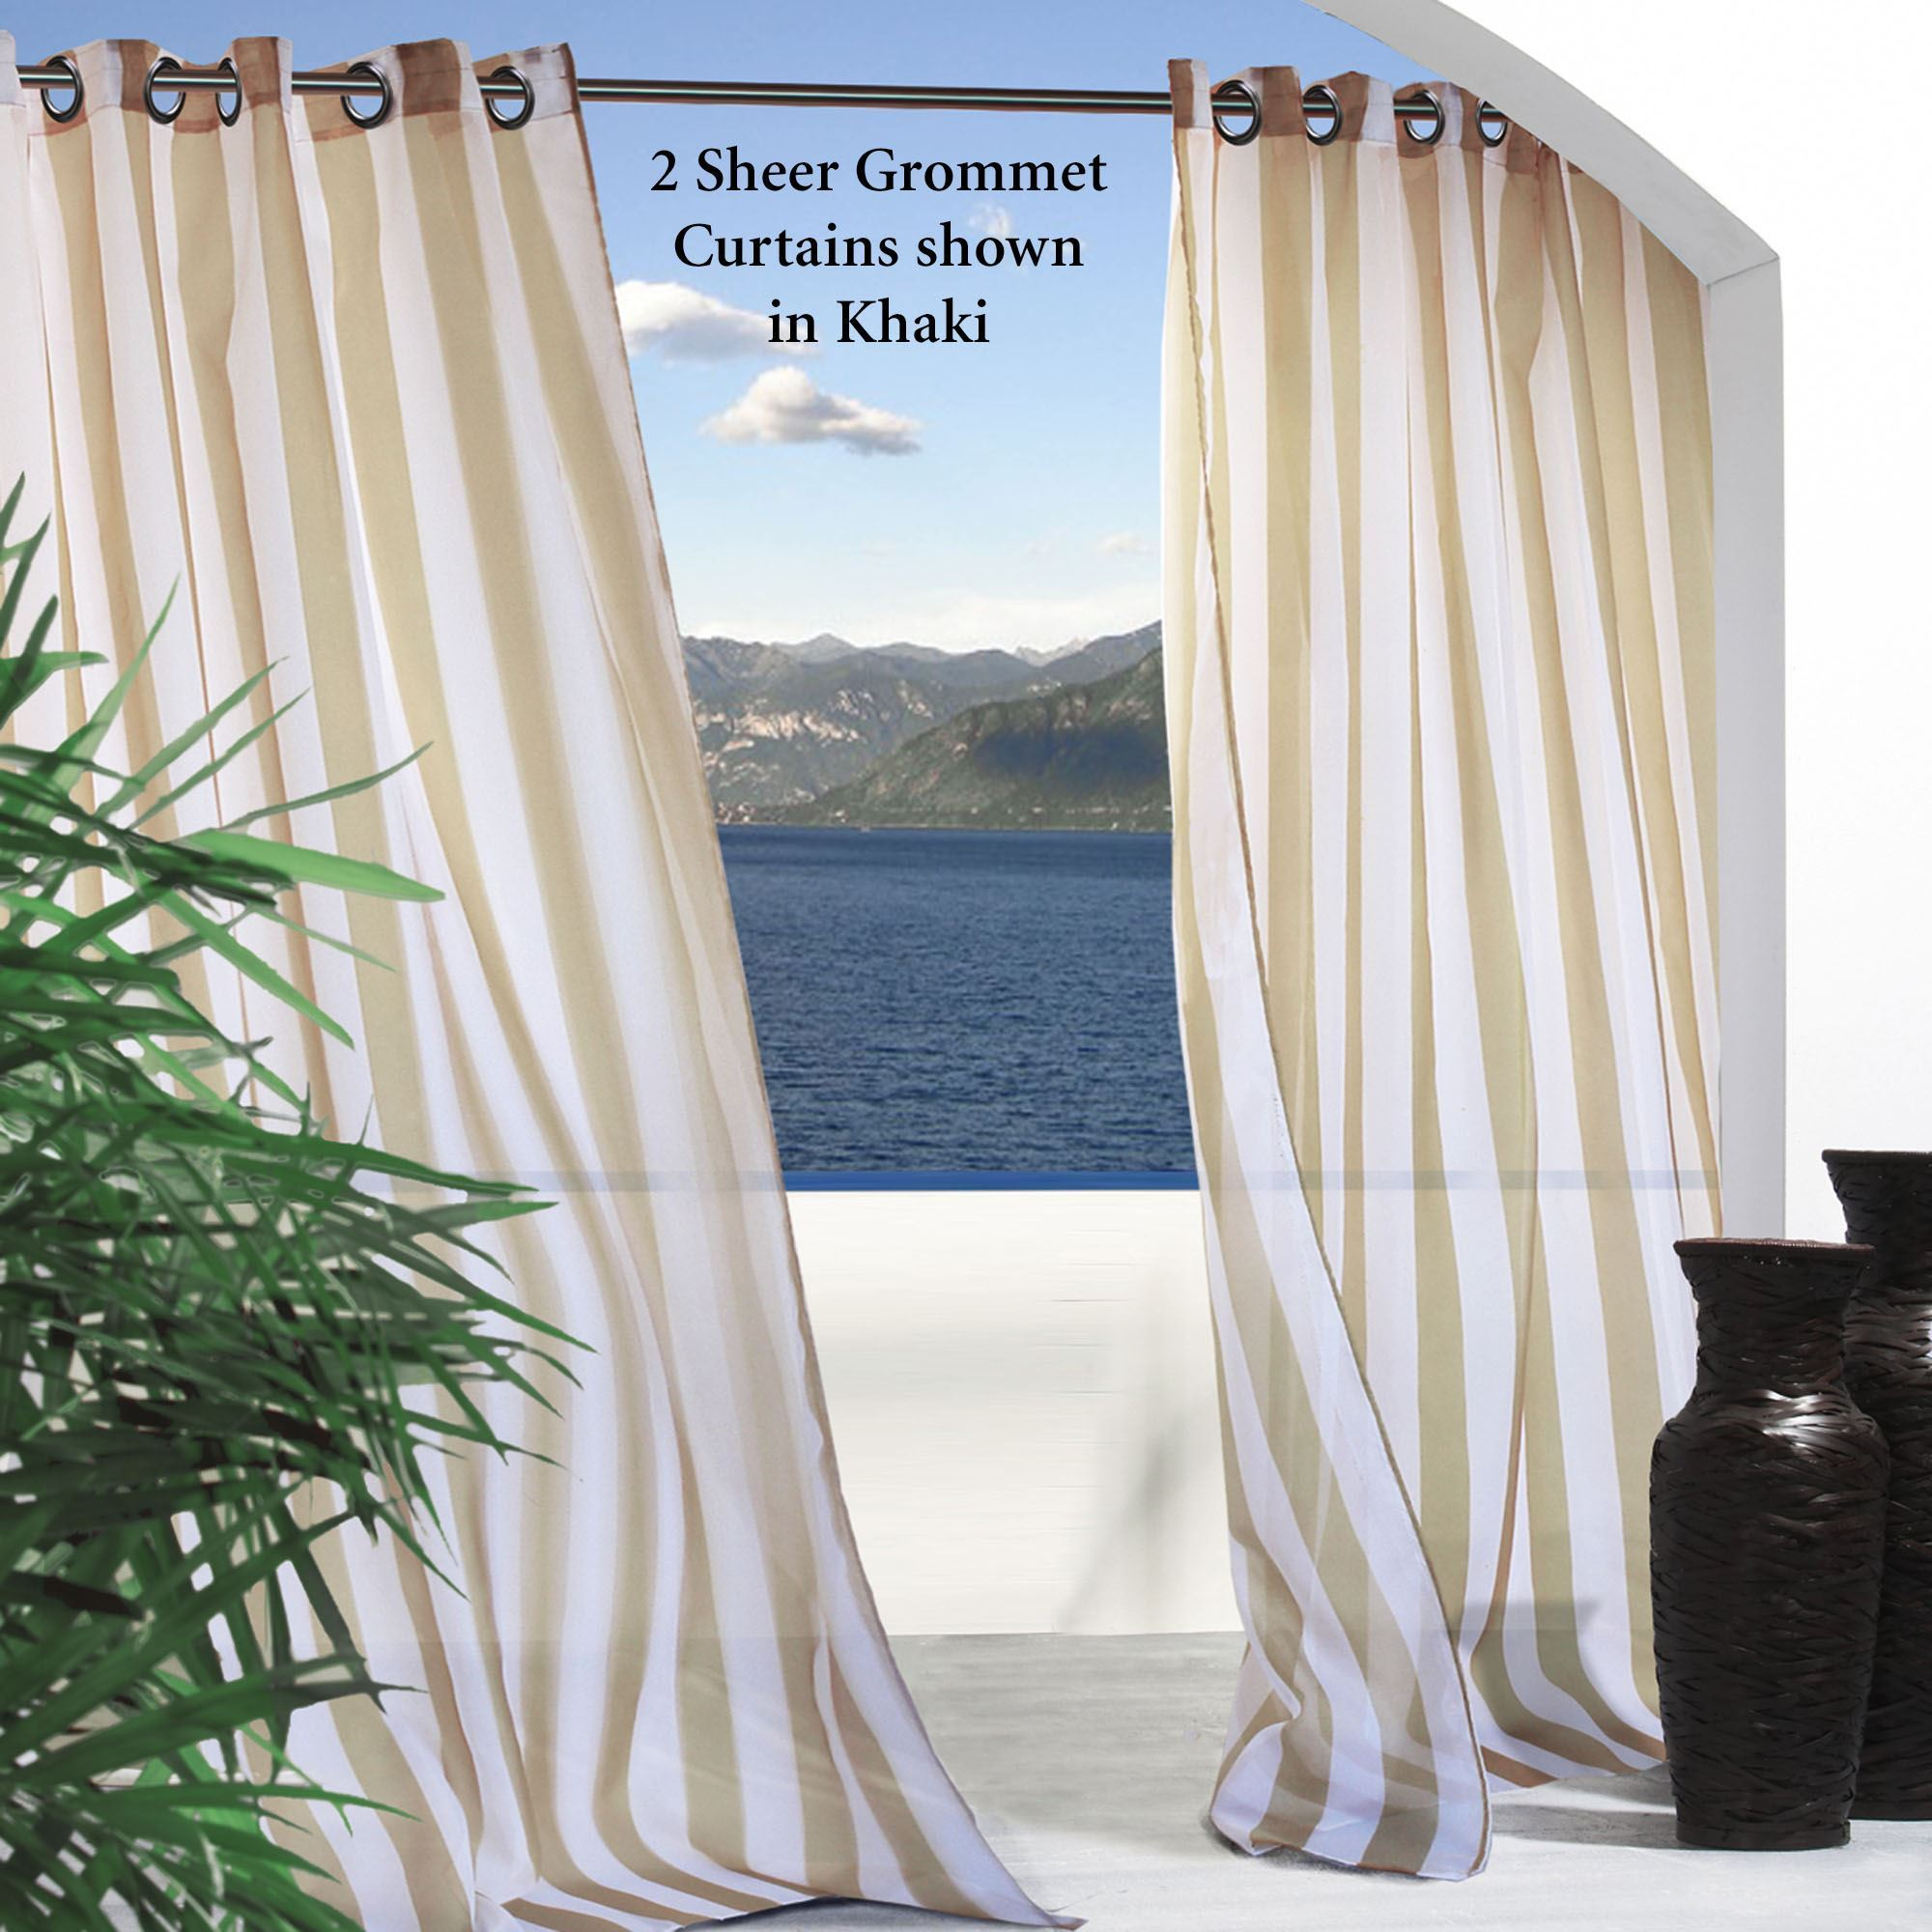 charter extra image grommets flower with curtain ideas curtains of home